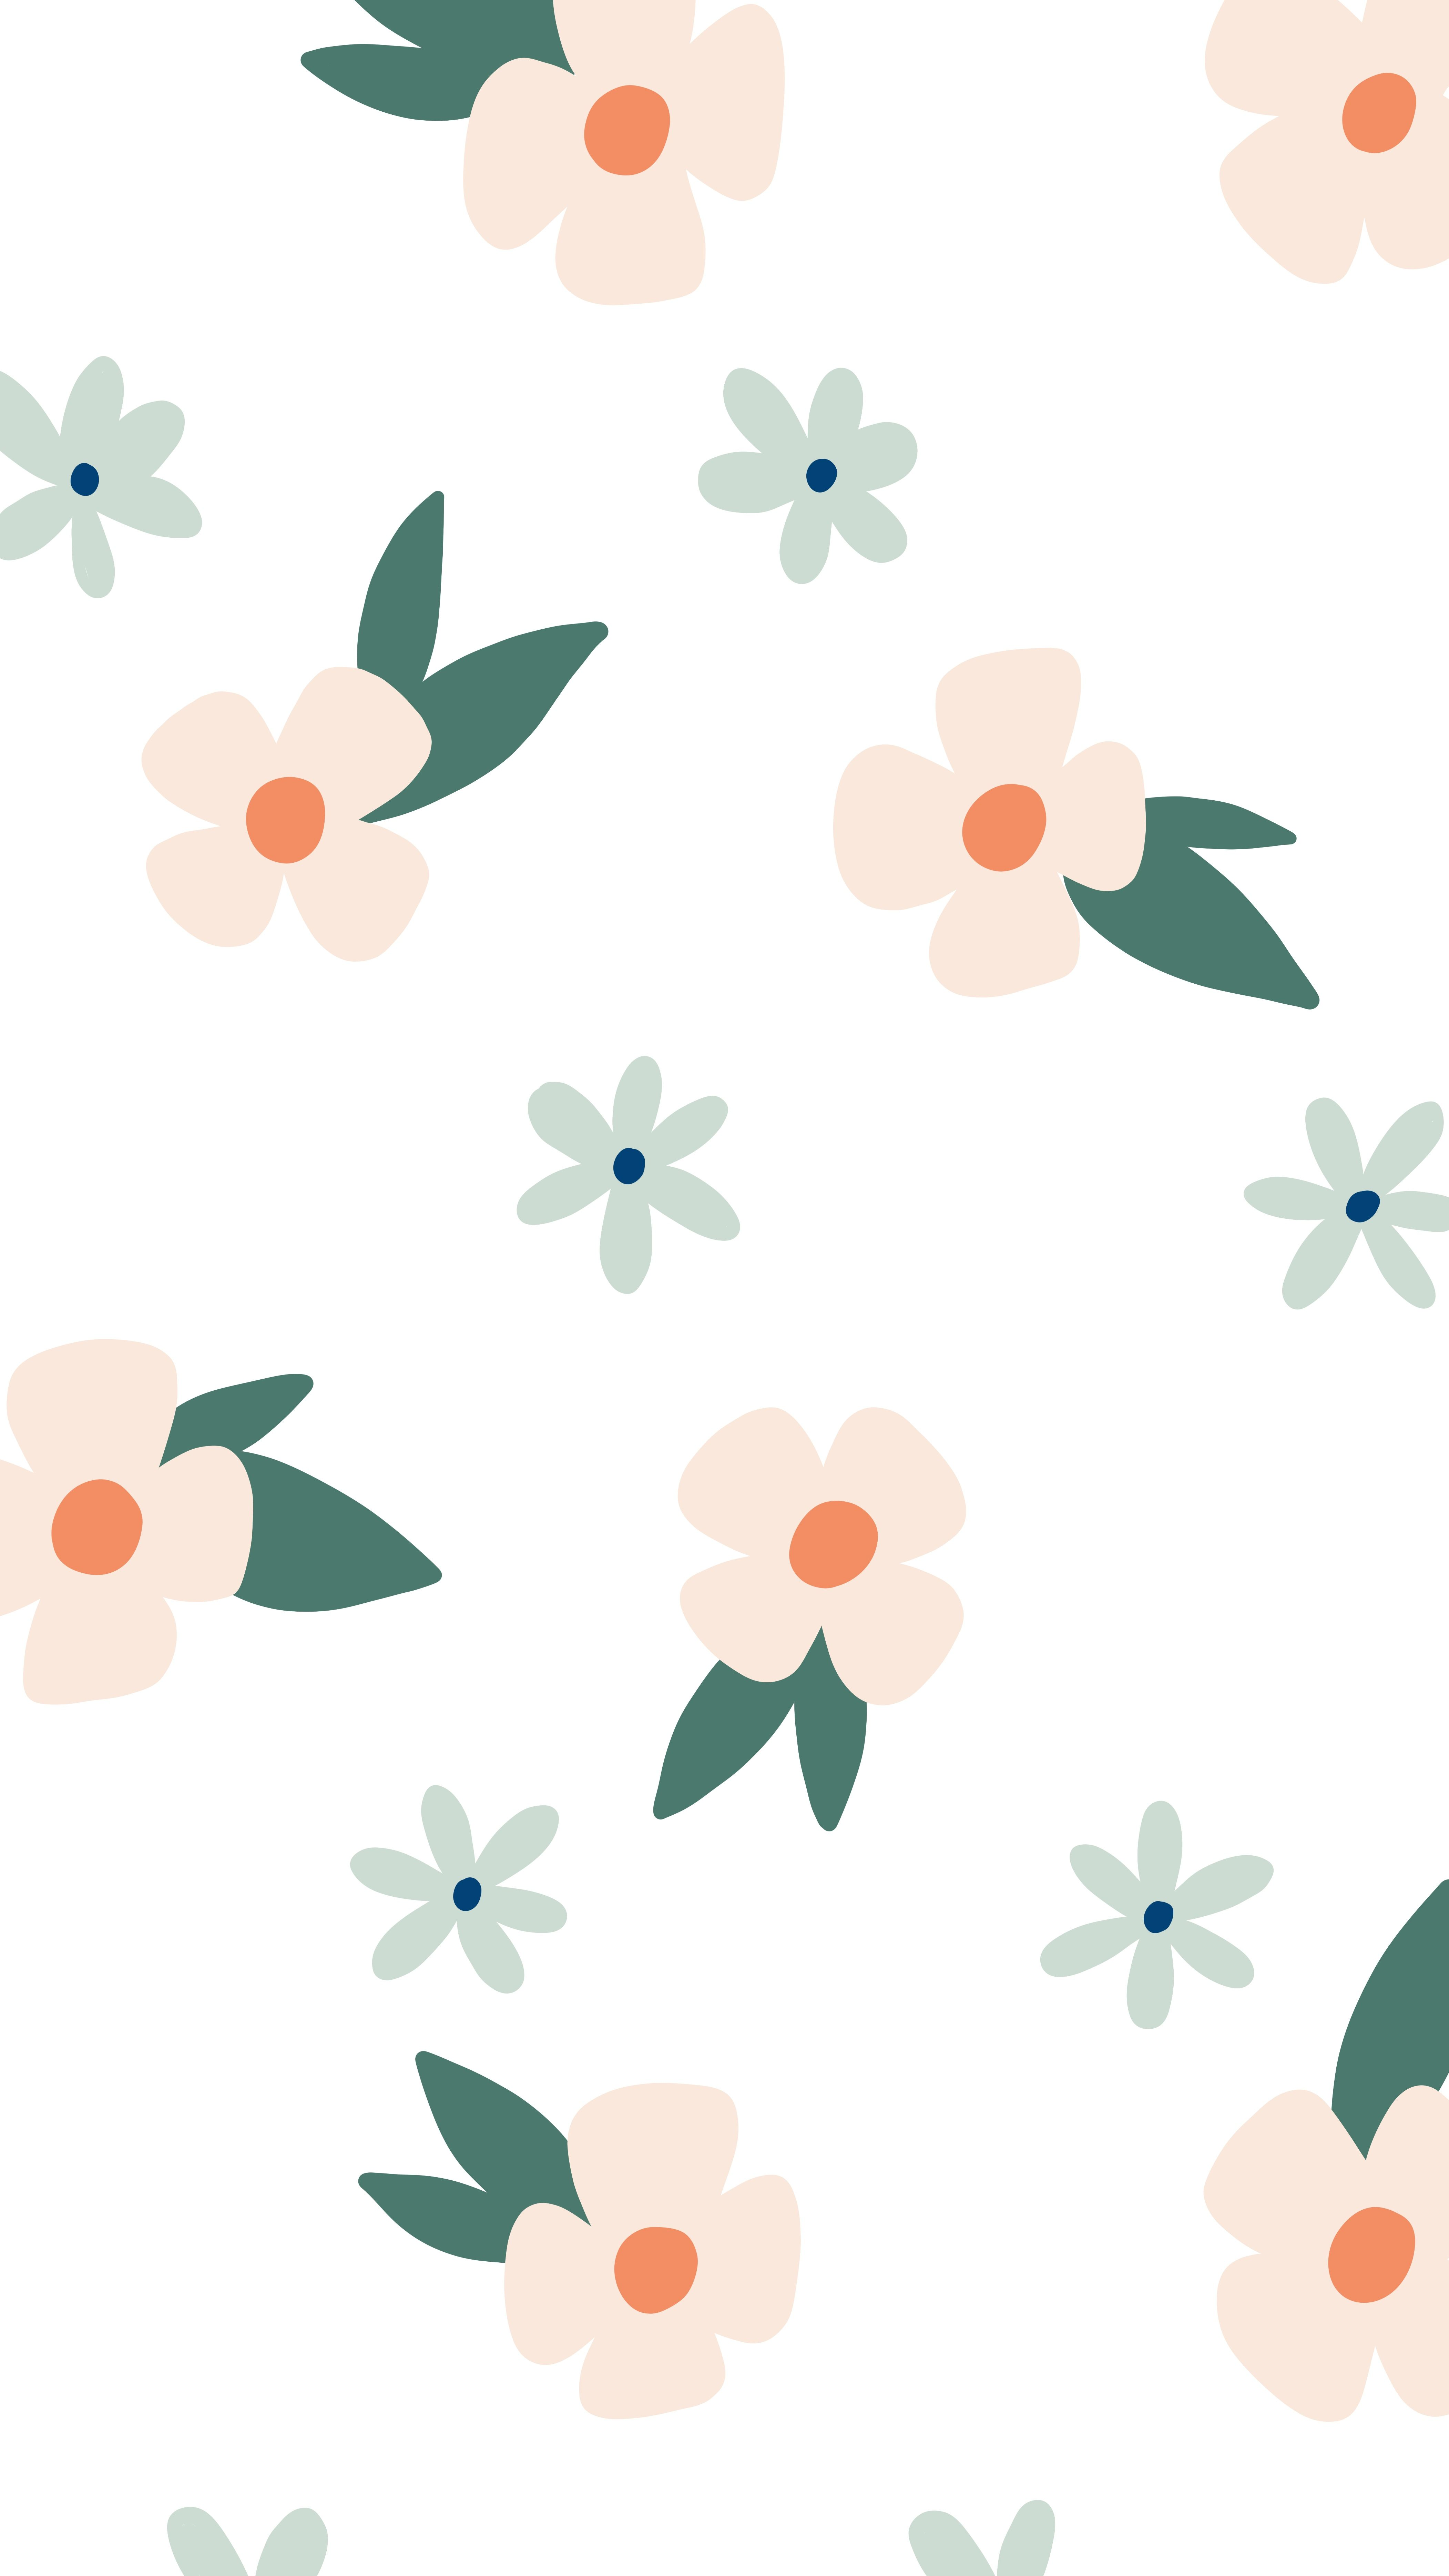 My May Flowers A Daily Drawing Challenge Simple Floral Pattern